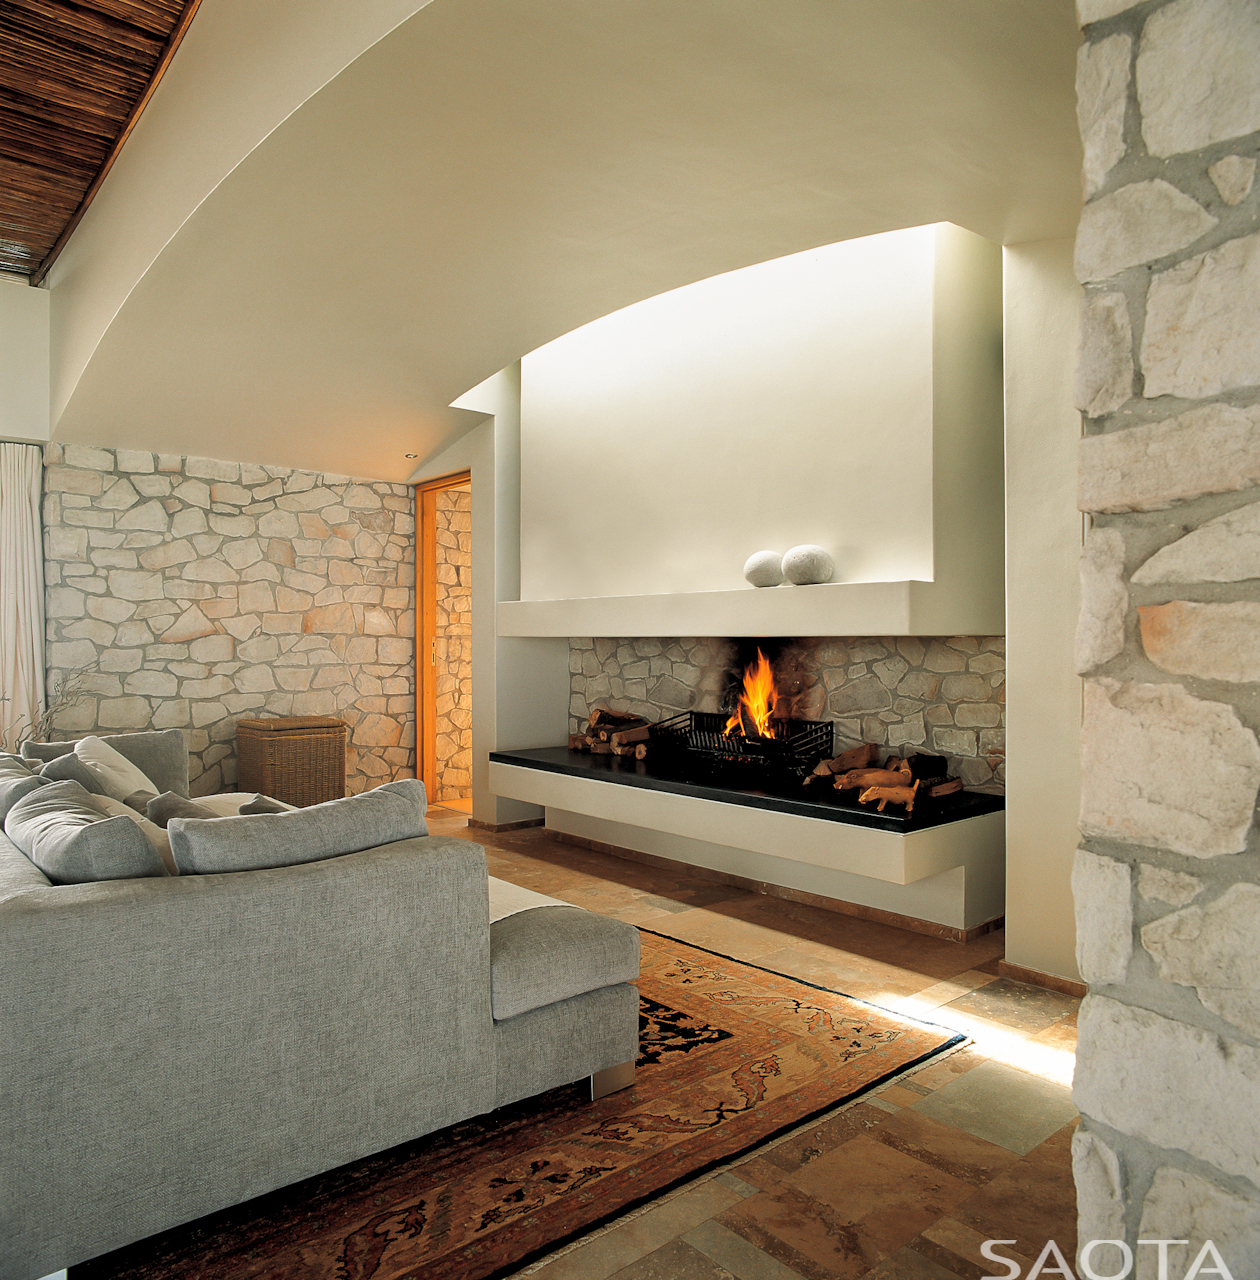 Close view of the fireplace. Open design allows fire to sit on built-in shelf, with hidden chimney behind white detail wall extension.